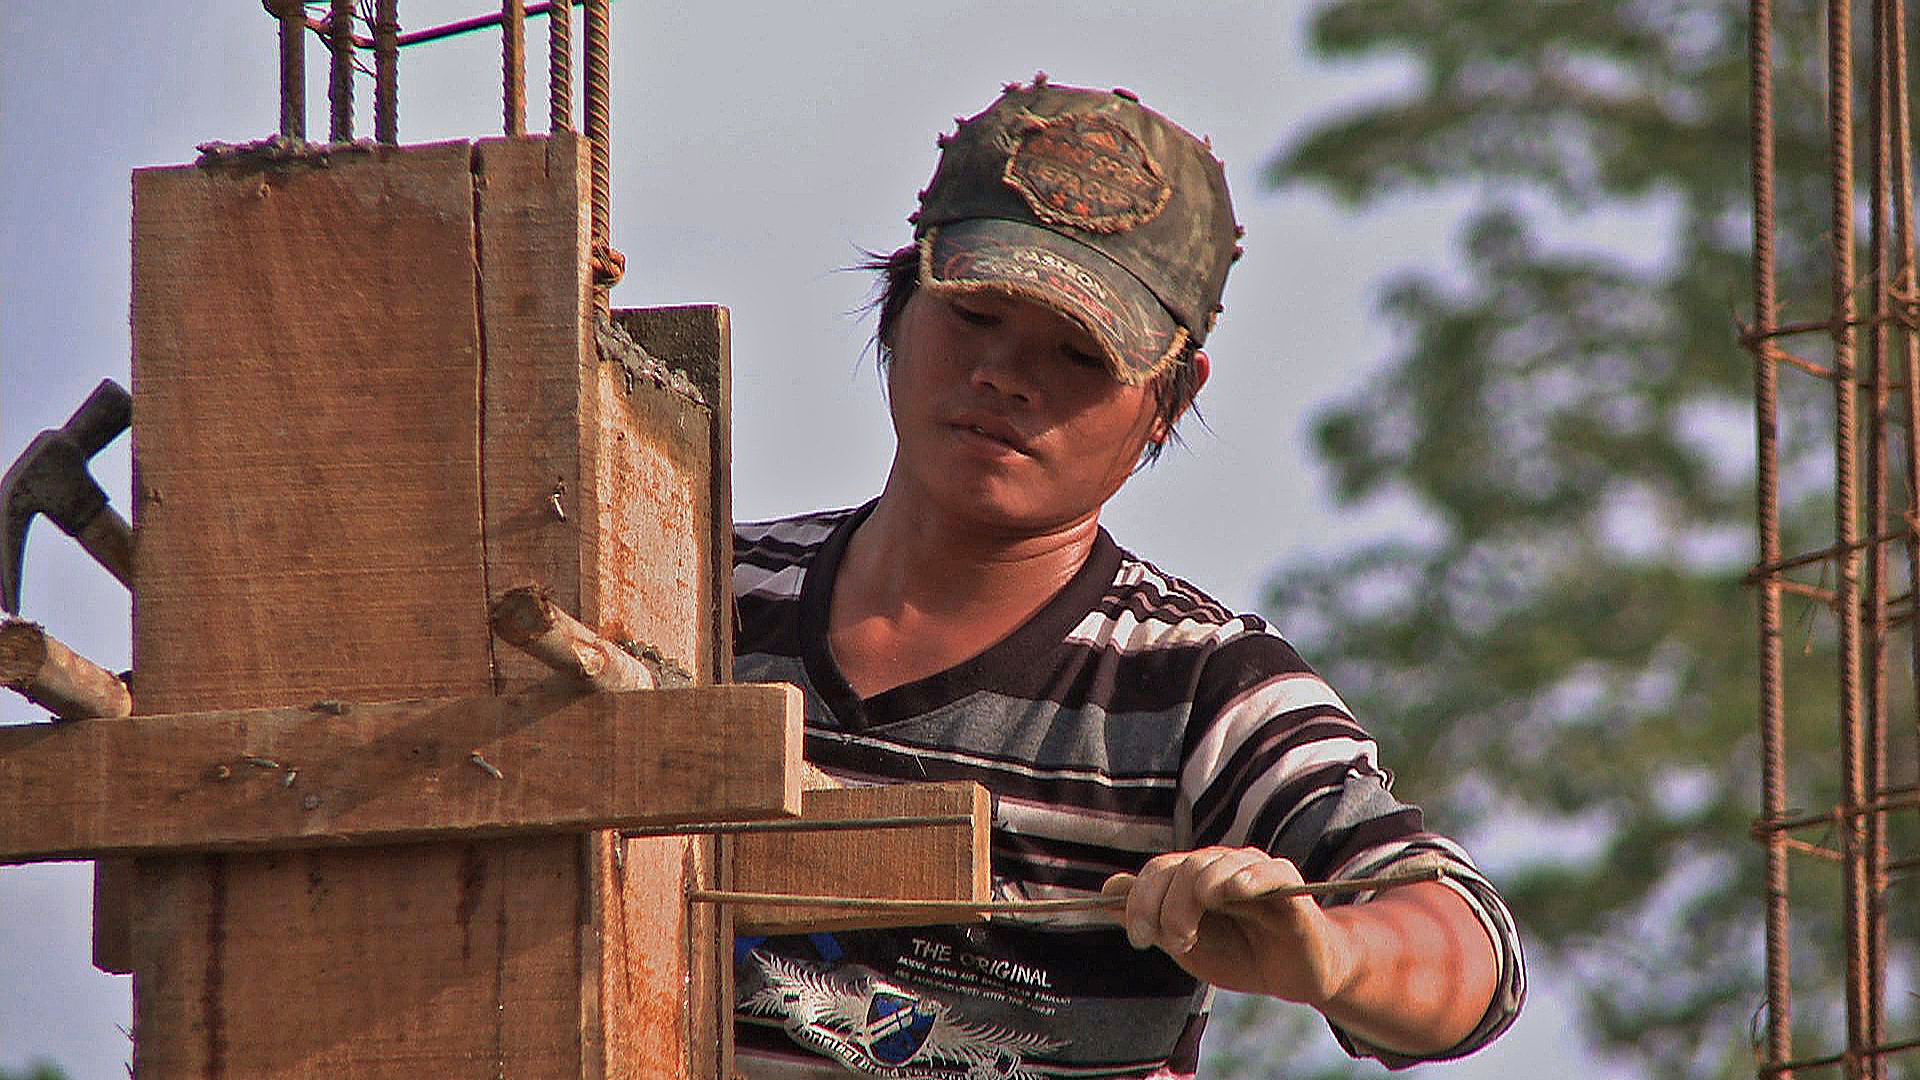 A Burmese construction worker in Chiang Mai. There are more than 2 million labour migrants in Thailand, mostly from neighbouring Myanmar